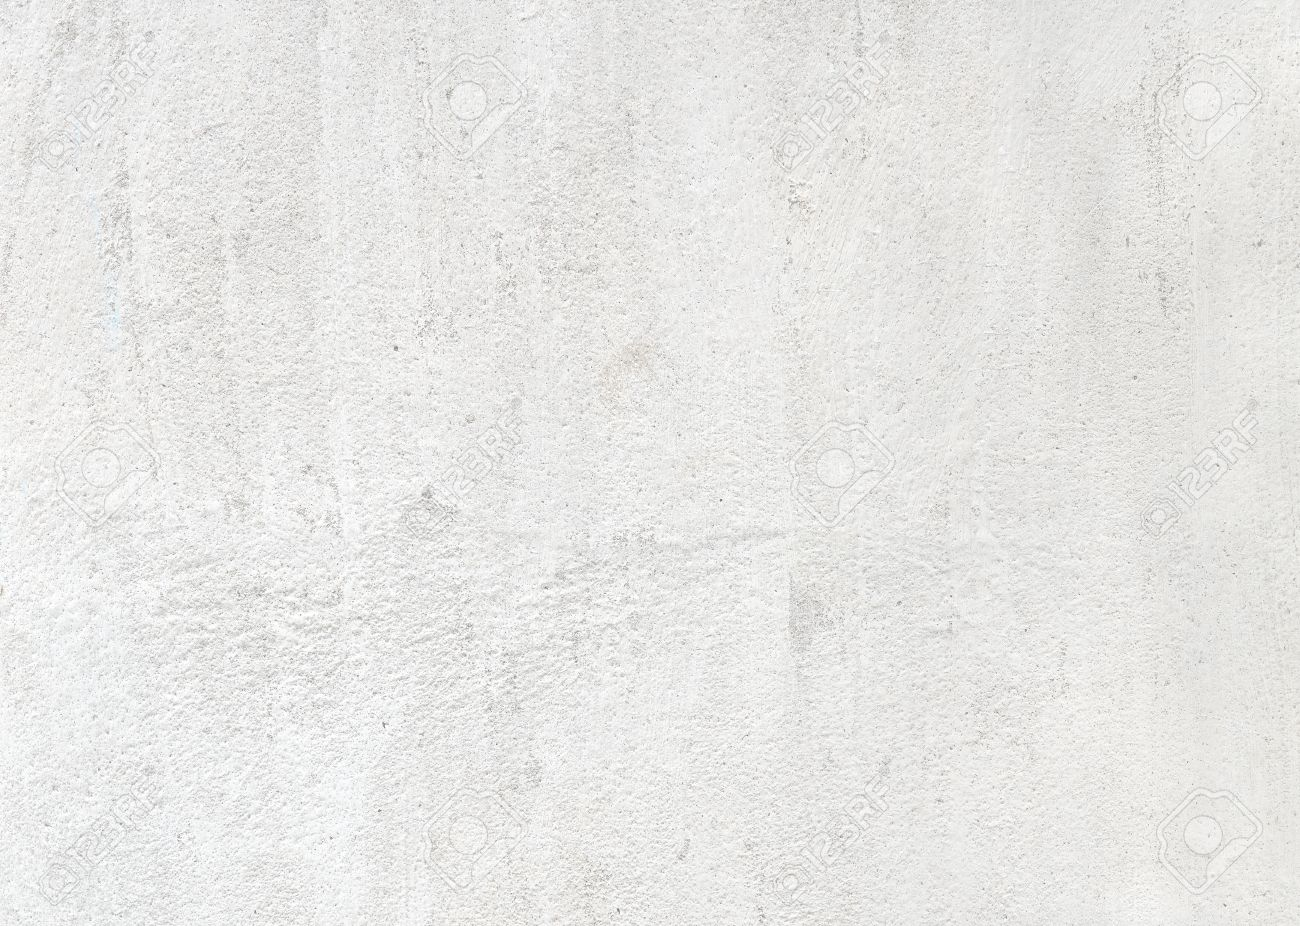 Wall paint texture seamless - Paint Texture Blank White Color Paint Concrete Wall Texture Background